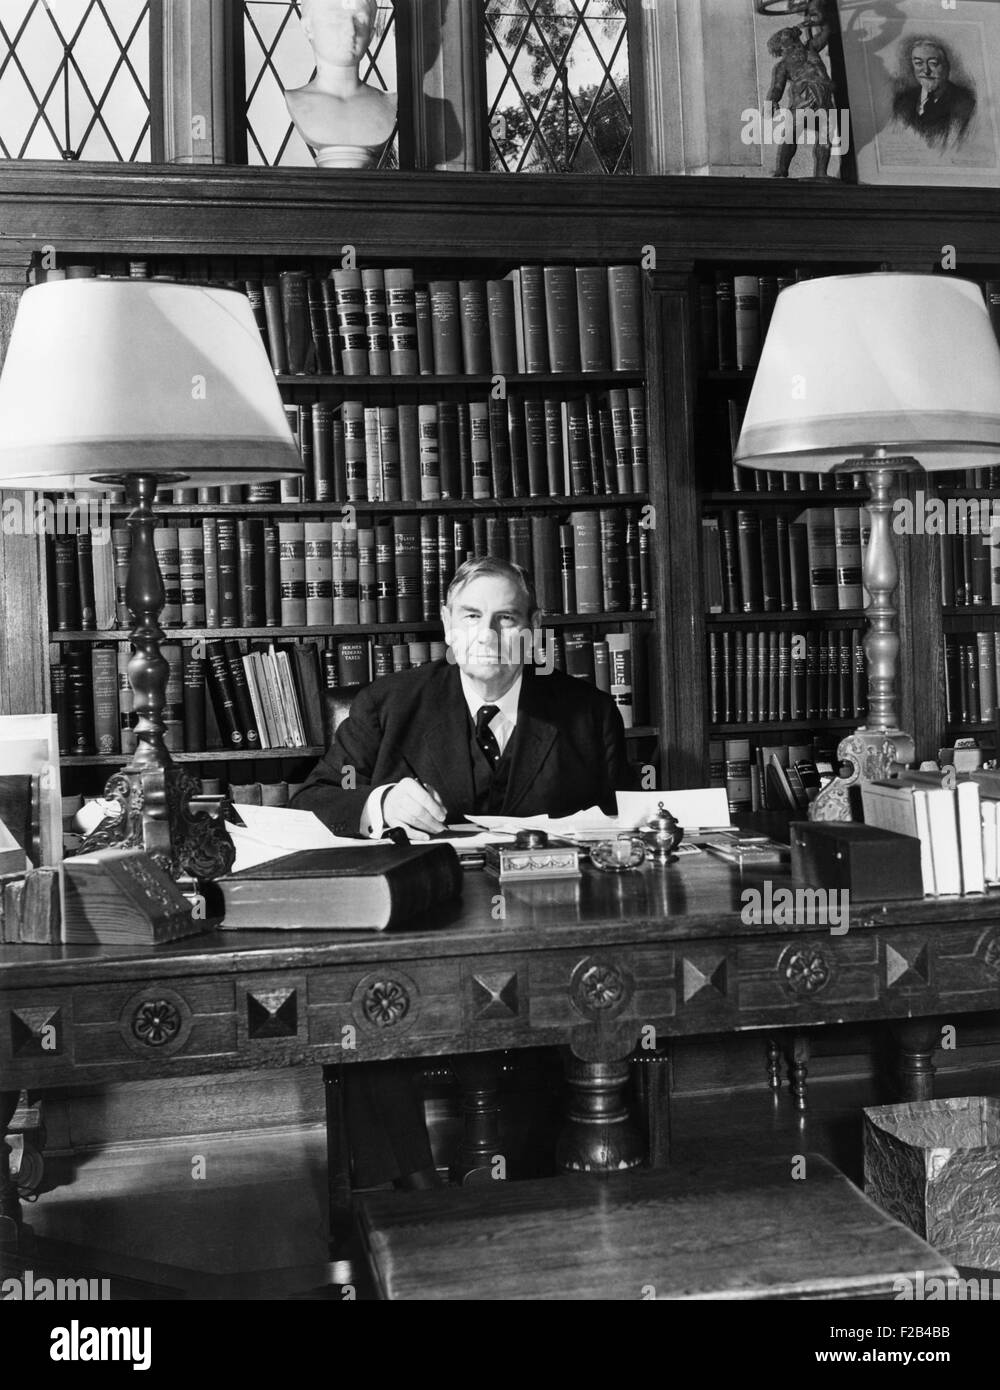 Chief Justice Harlan Fiske Stone of the U.S. Supreme Court at work in his study, Oct. 4, 1941. - (CSU_2015_5_119) - Stock Image